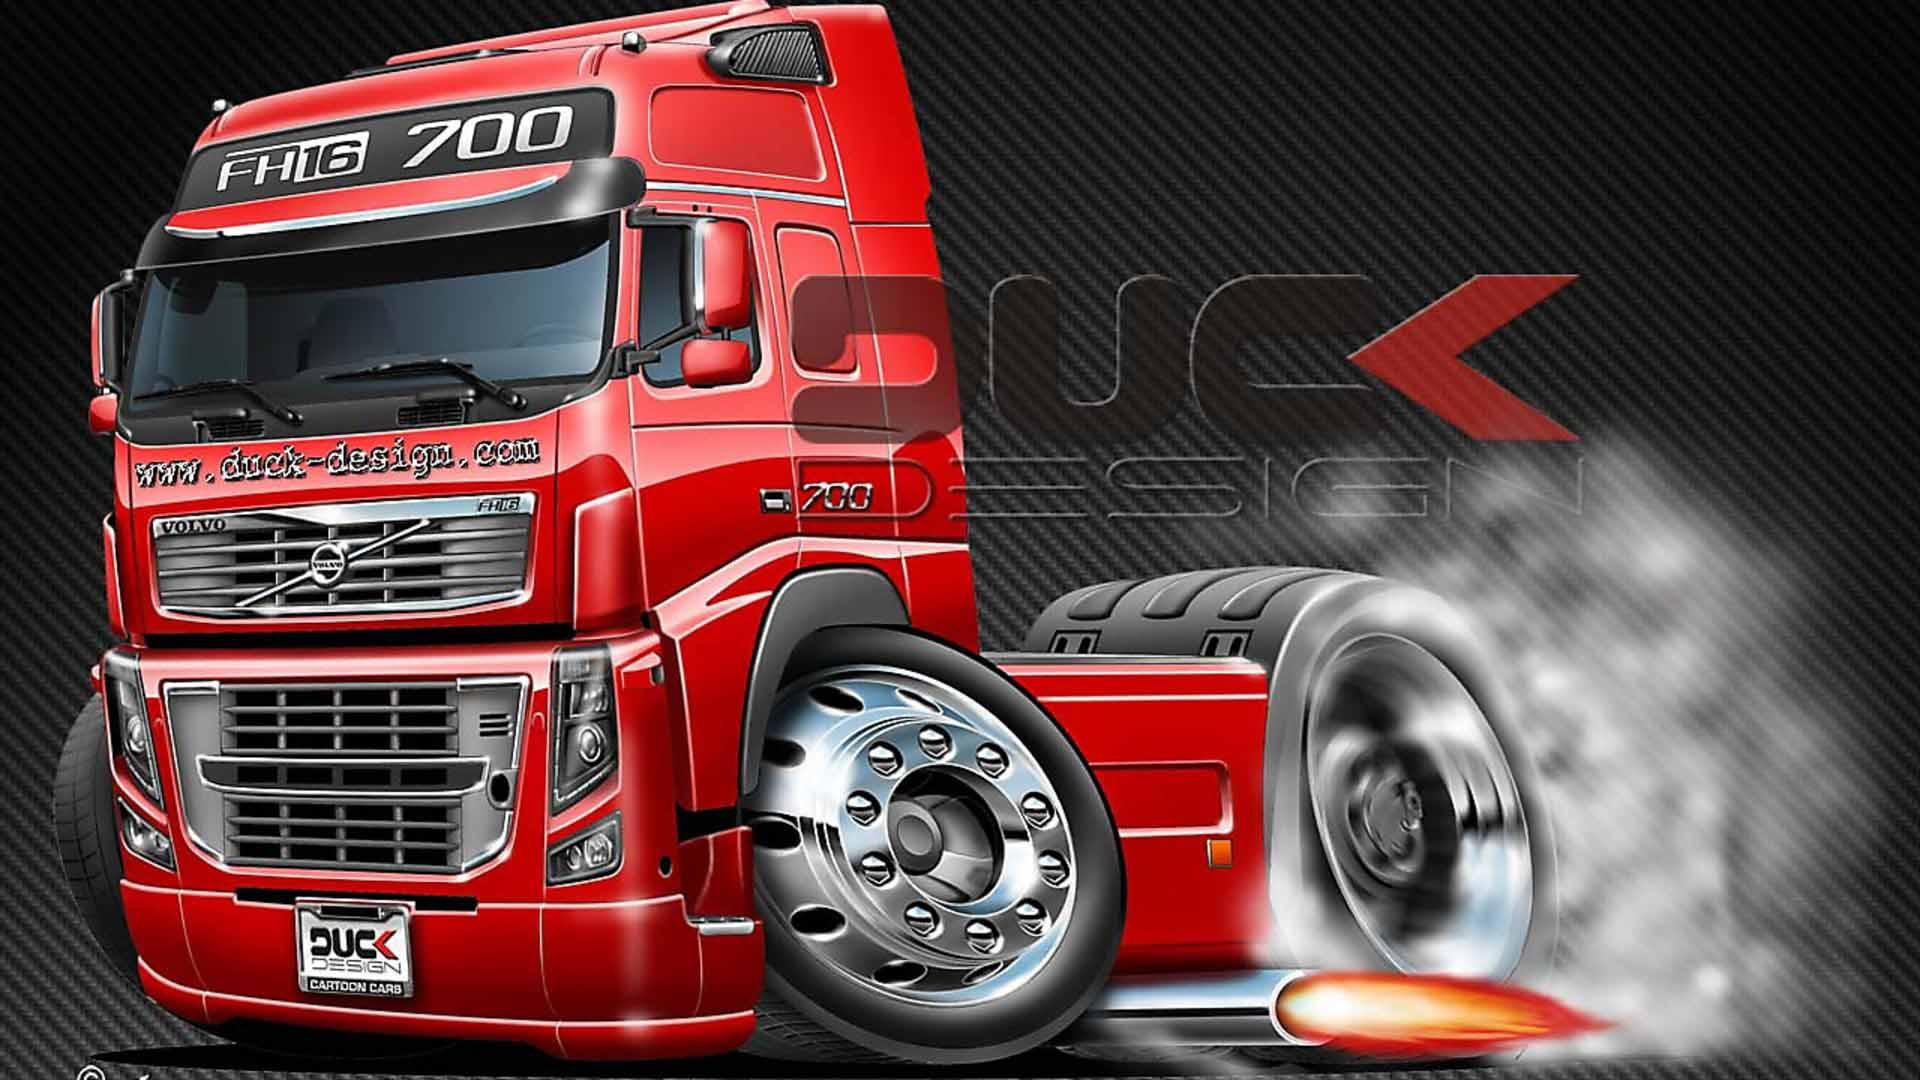 Truck FH 700 HD Wallpaper